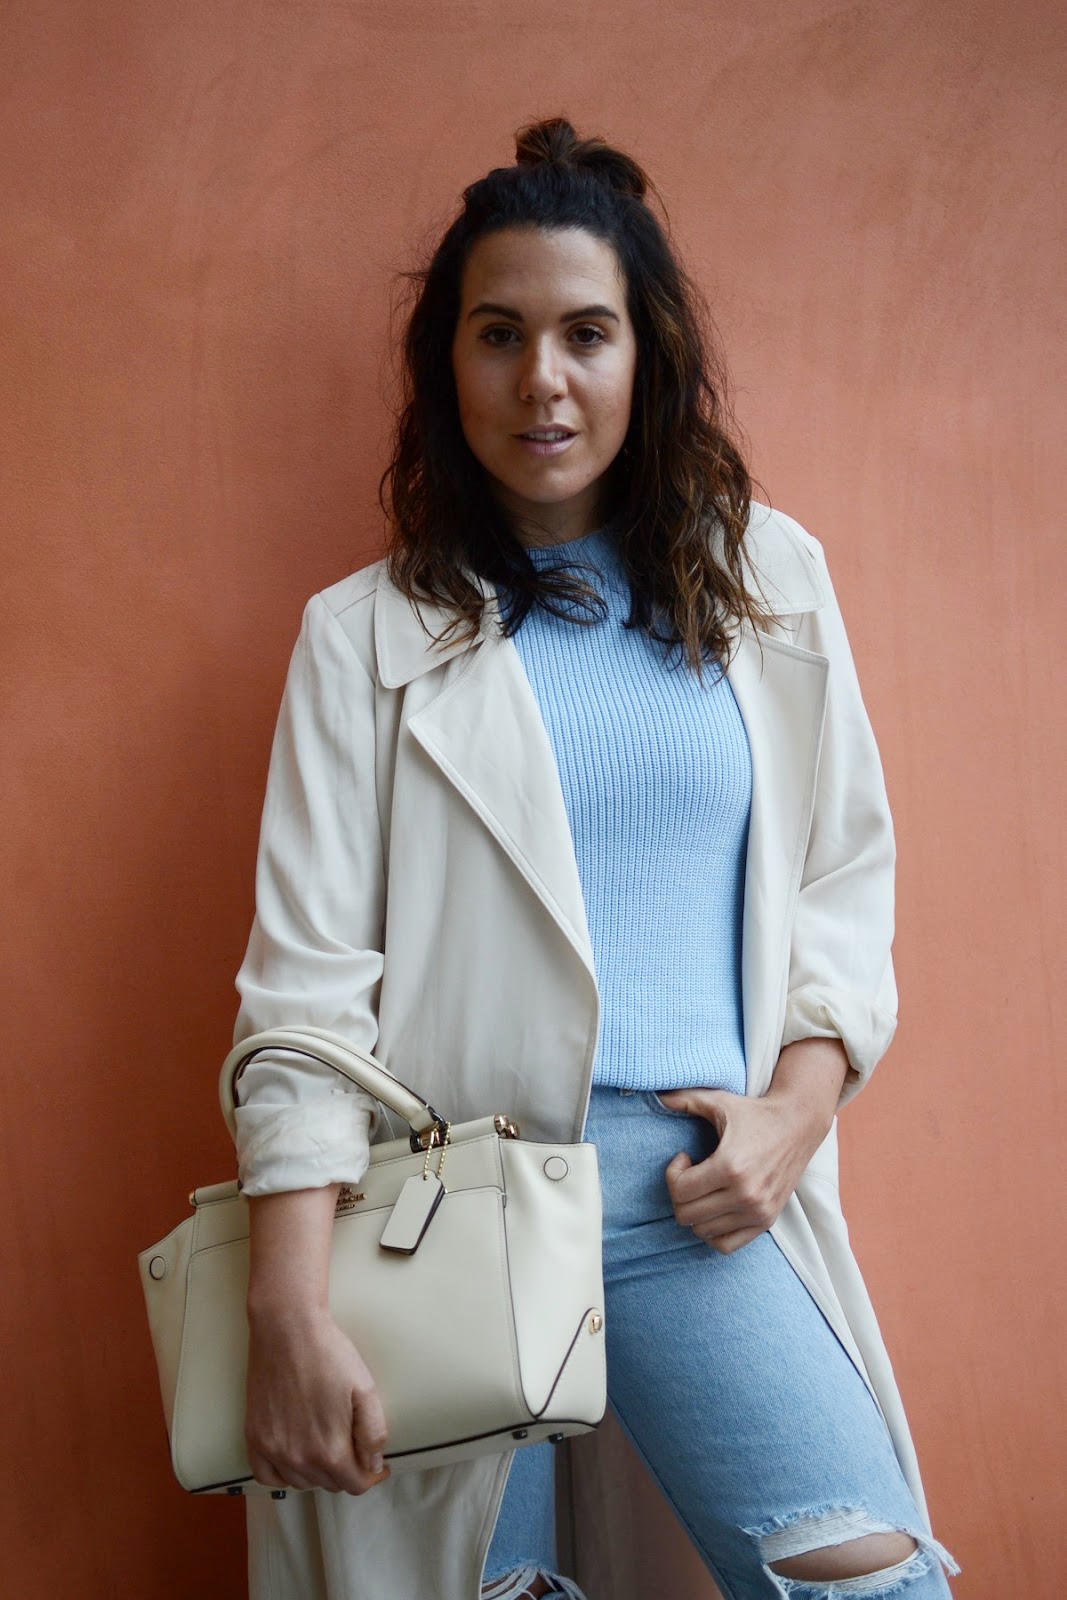 Coach Selena bag cream bag outfit vancouver fashion blogger Aritzia Kahlo jacket levi's wedgie jeans outfit aleesha harris